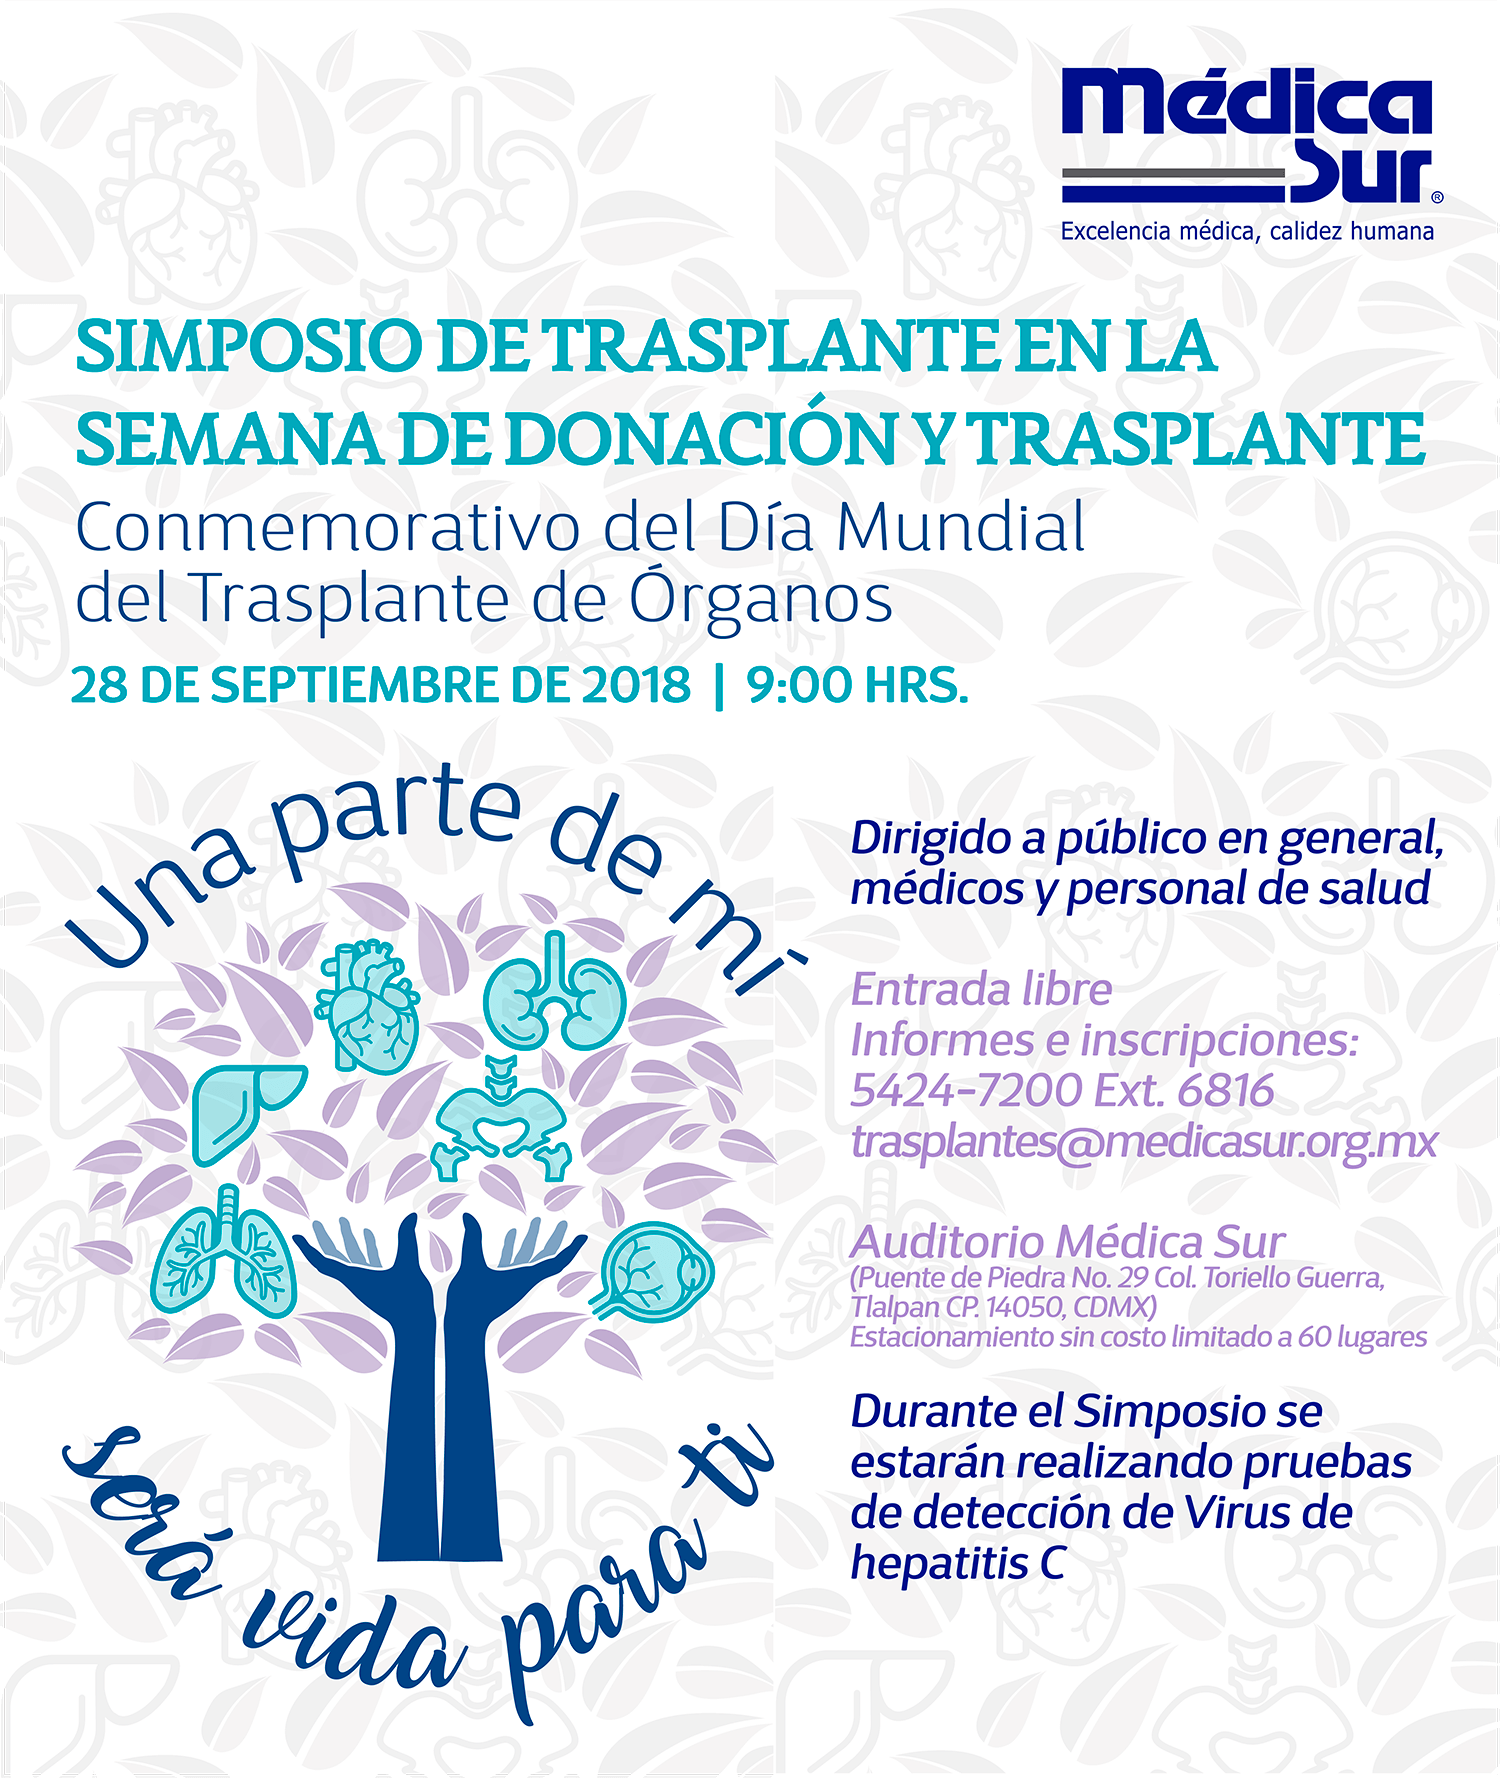 Cartel de invitación al evento